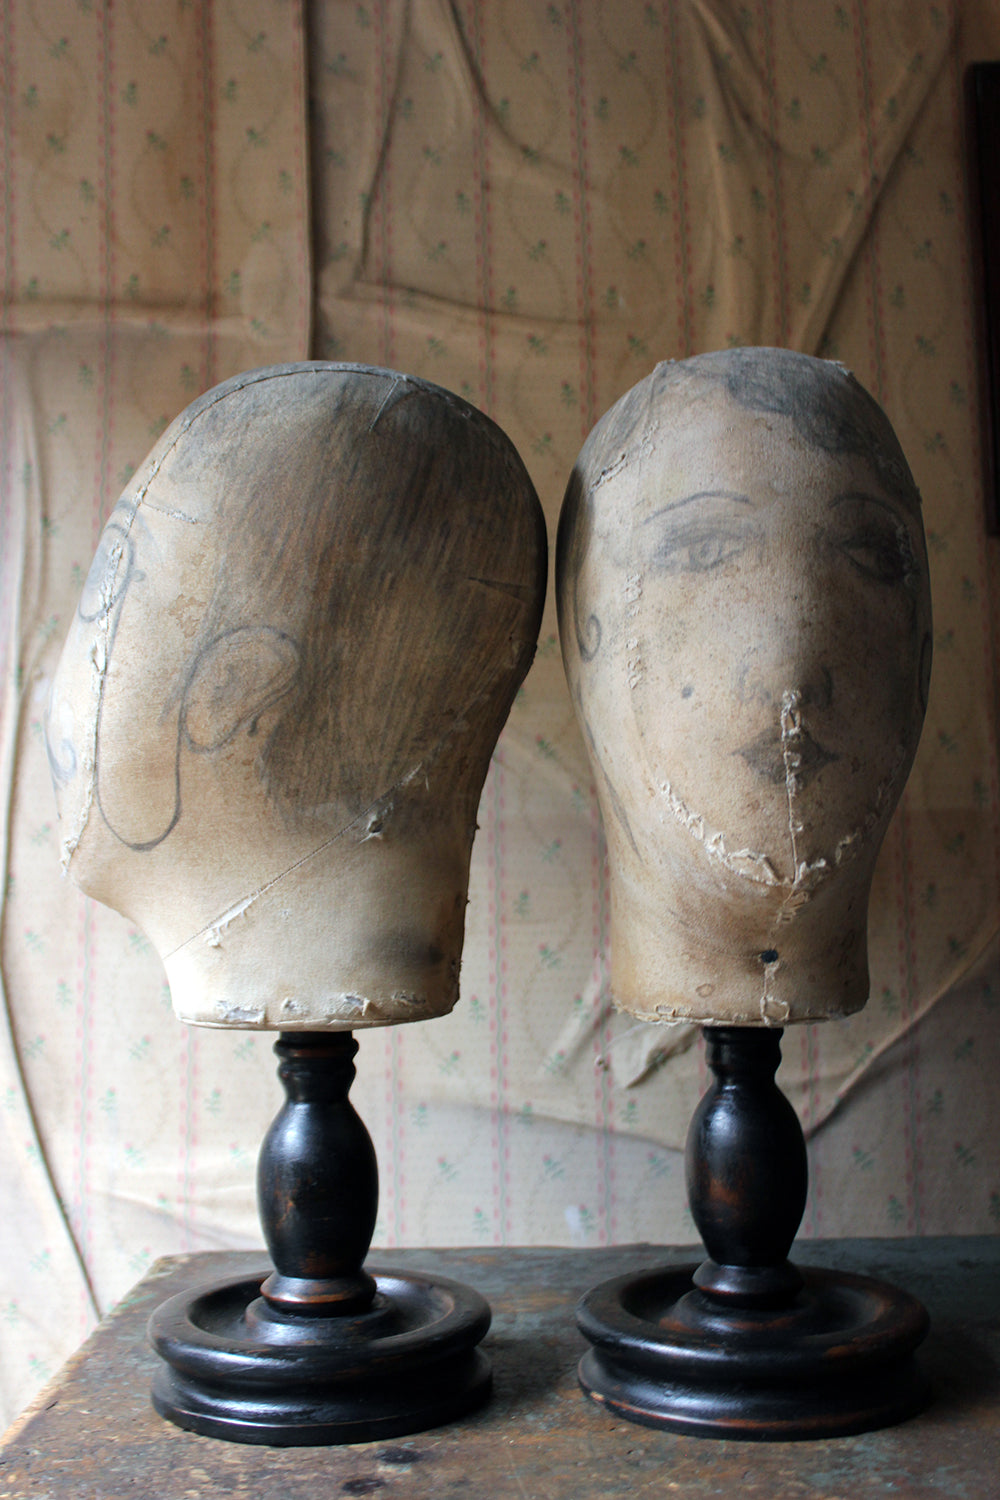 A Decorative Pair of Mannequin Shop Display Heads as a Flapper & Dandy